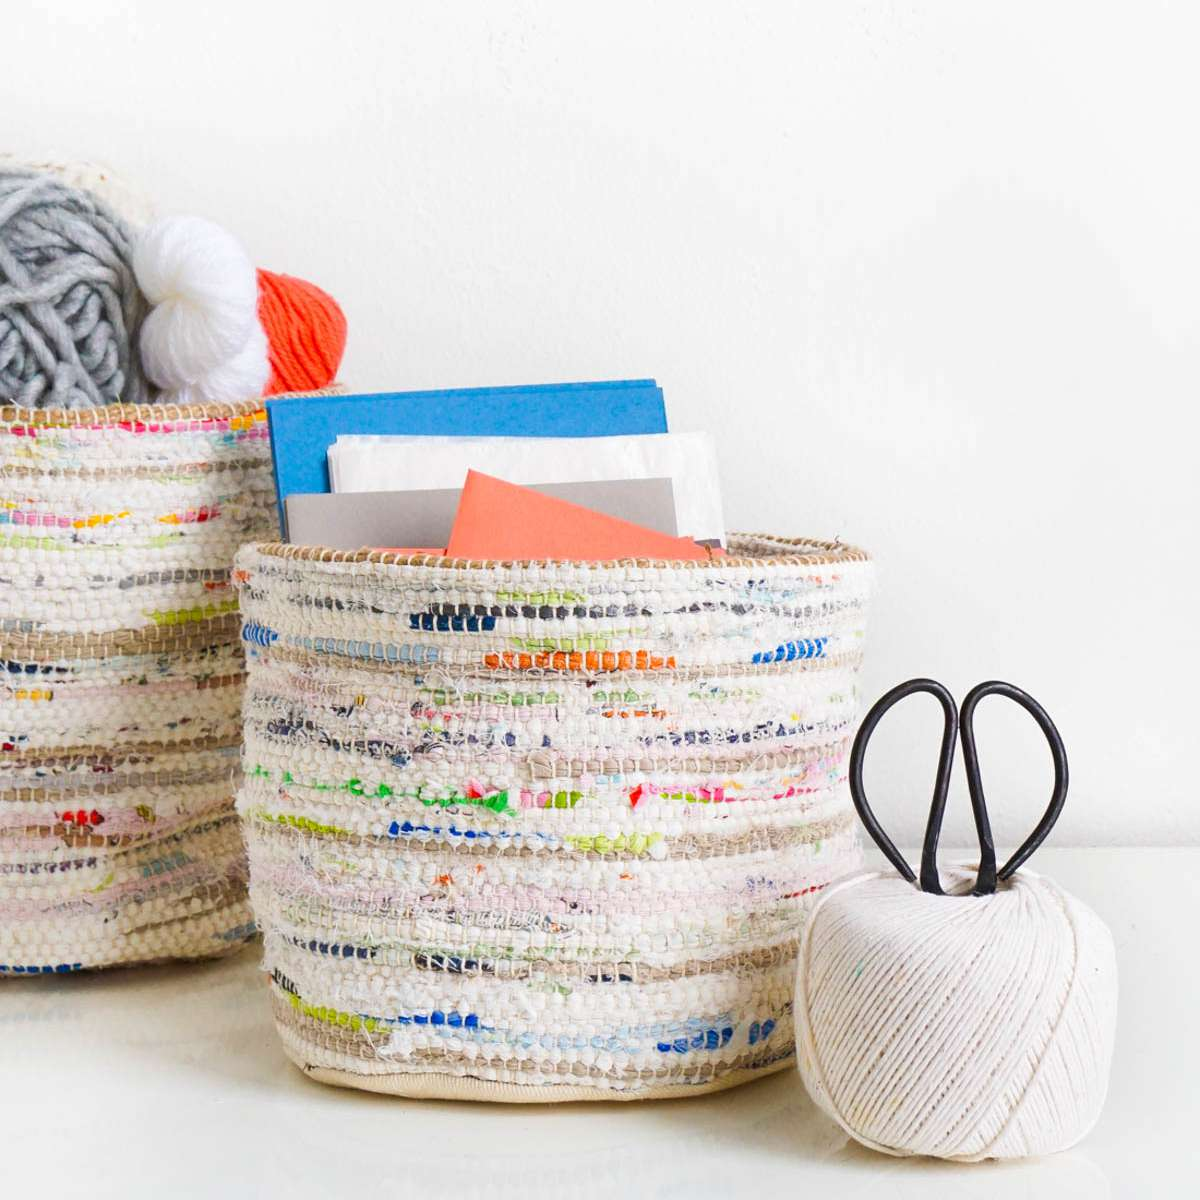 rope storage baskets used for storing craft supplies